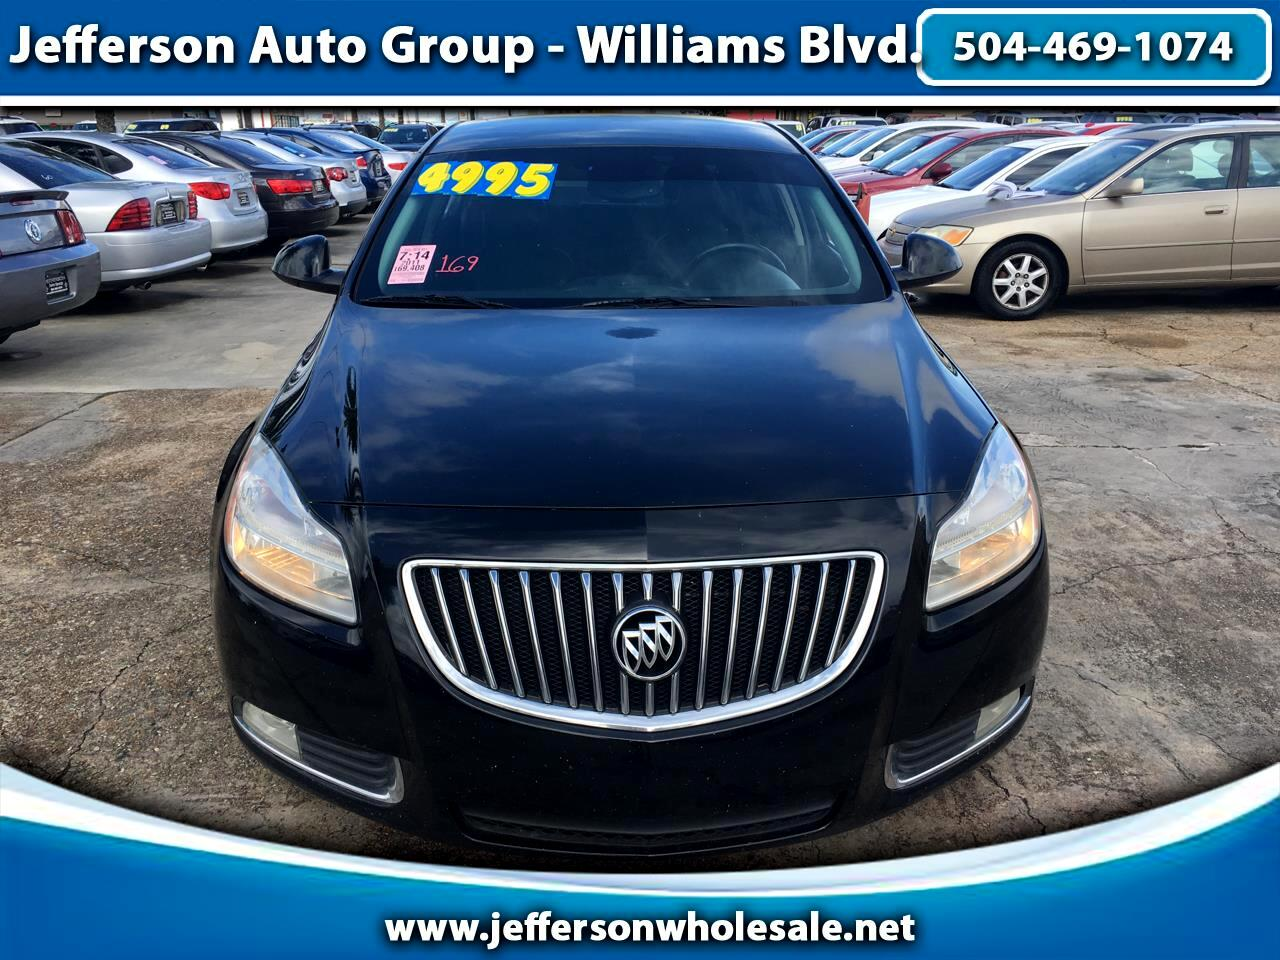 2011 Buick Regal 4dr Sdn FWD